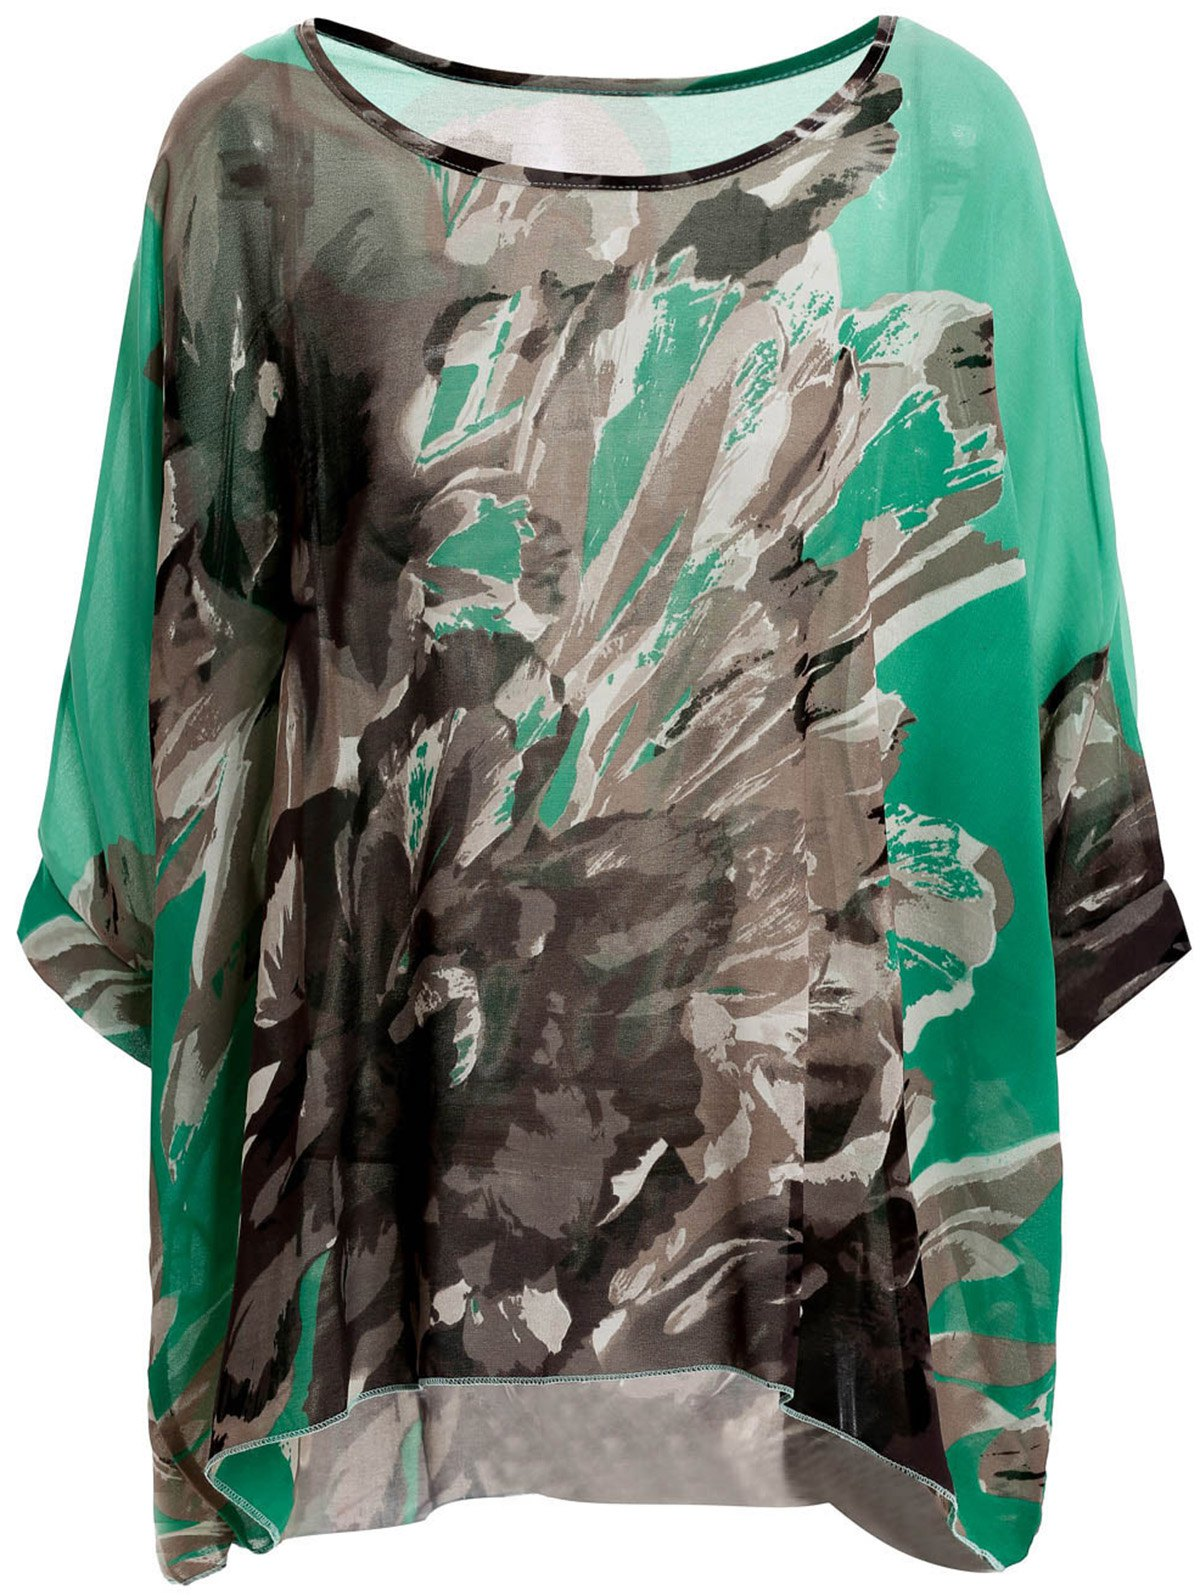 Stylish Scoop Neck Batwing Sleeve Loose-Fitting Floral Print Chiffon Blouse For Women - GRASS GREEN L